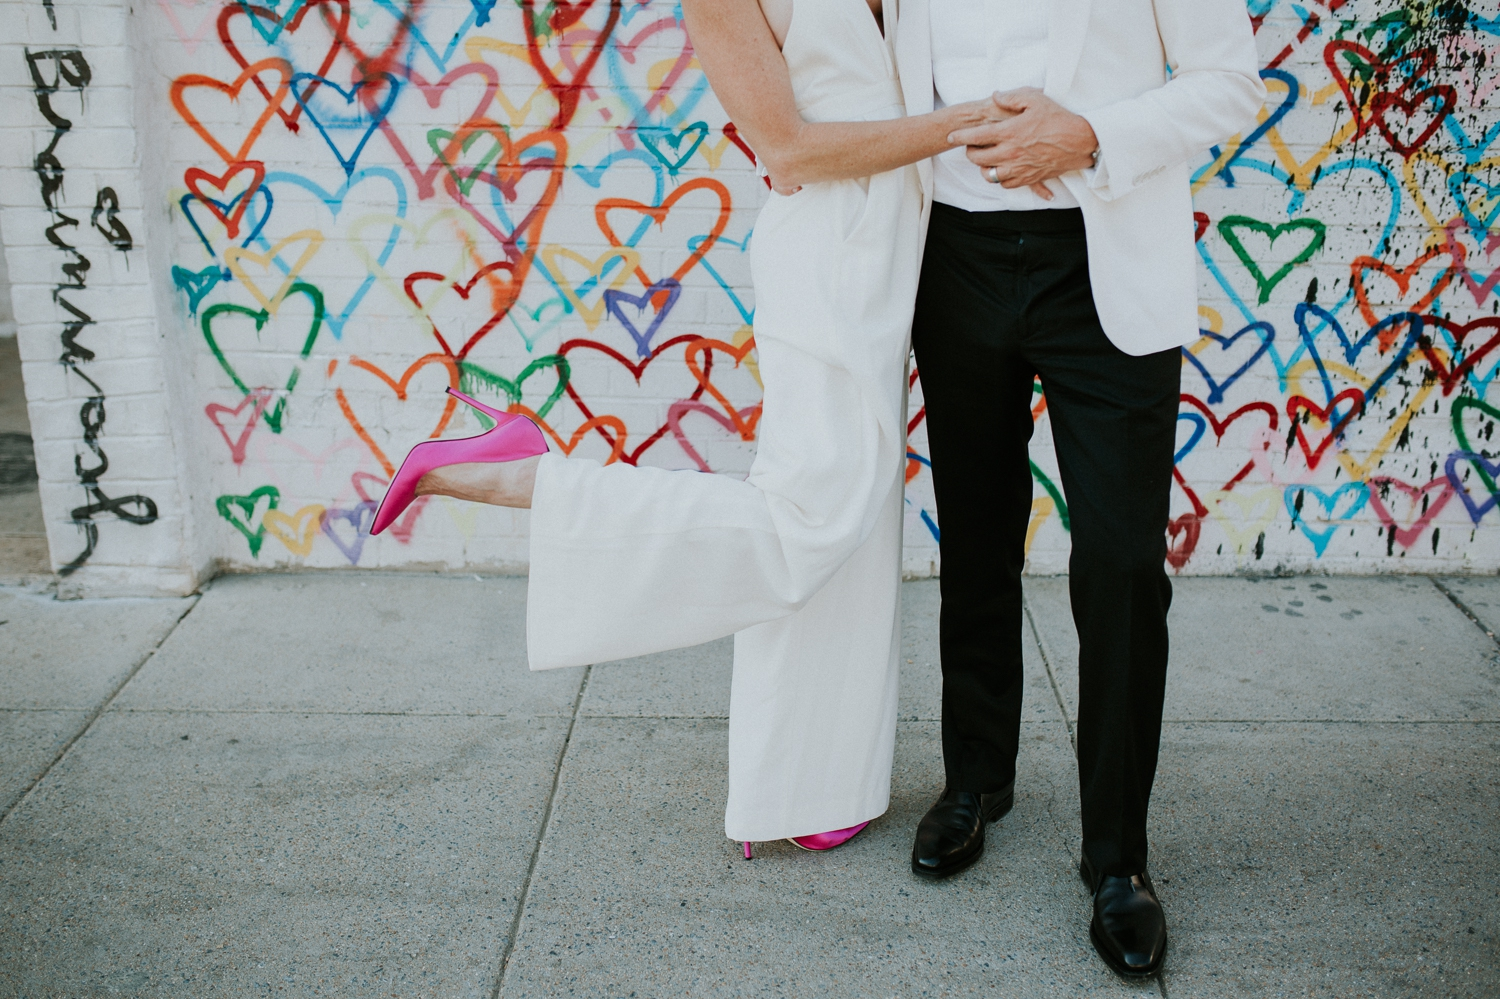 washington-dc-union-market-wedding-elopement-photography 16.jpg